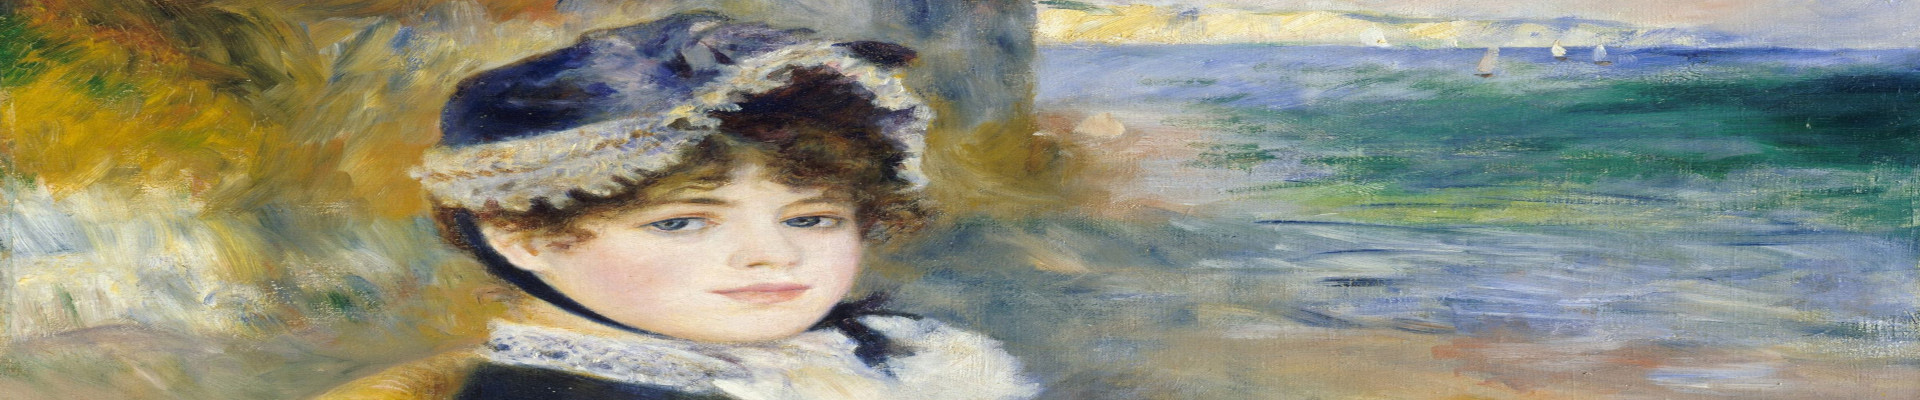 Renoir style wall art canvas and paper prints